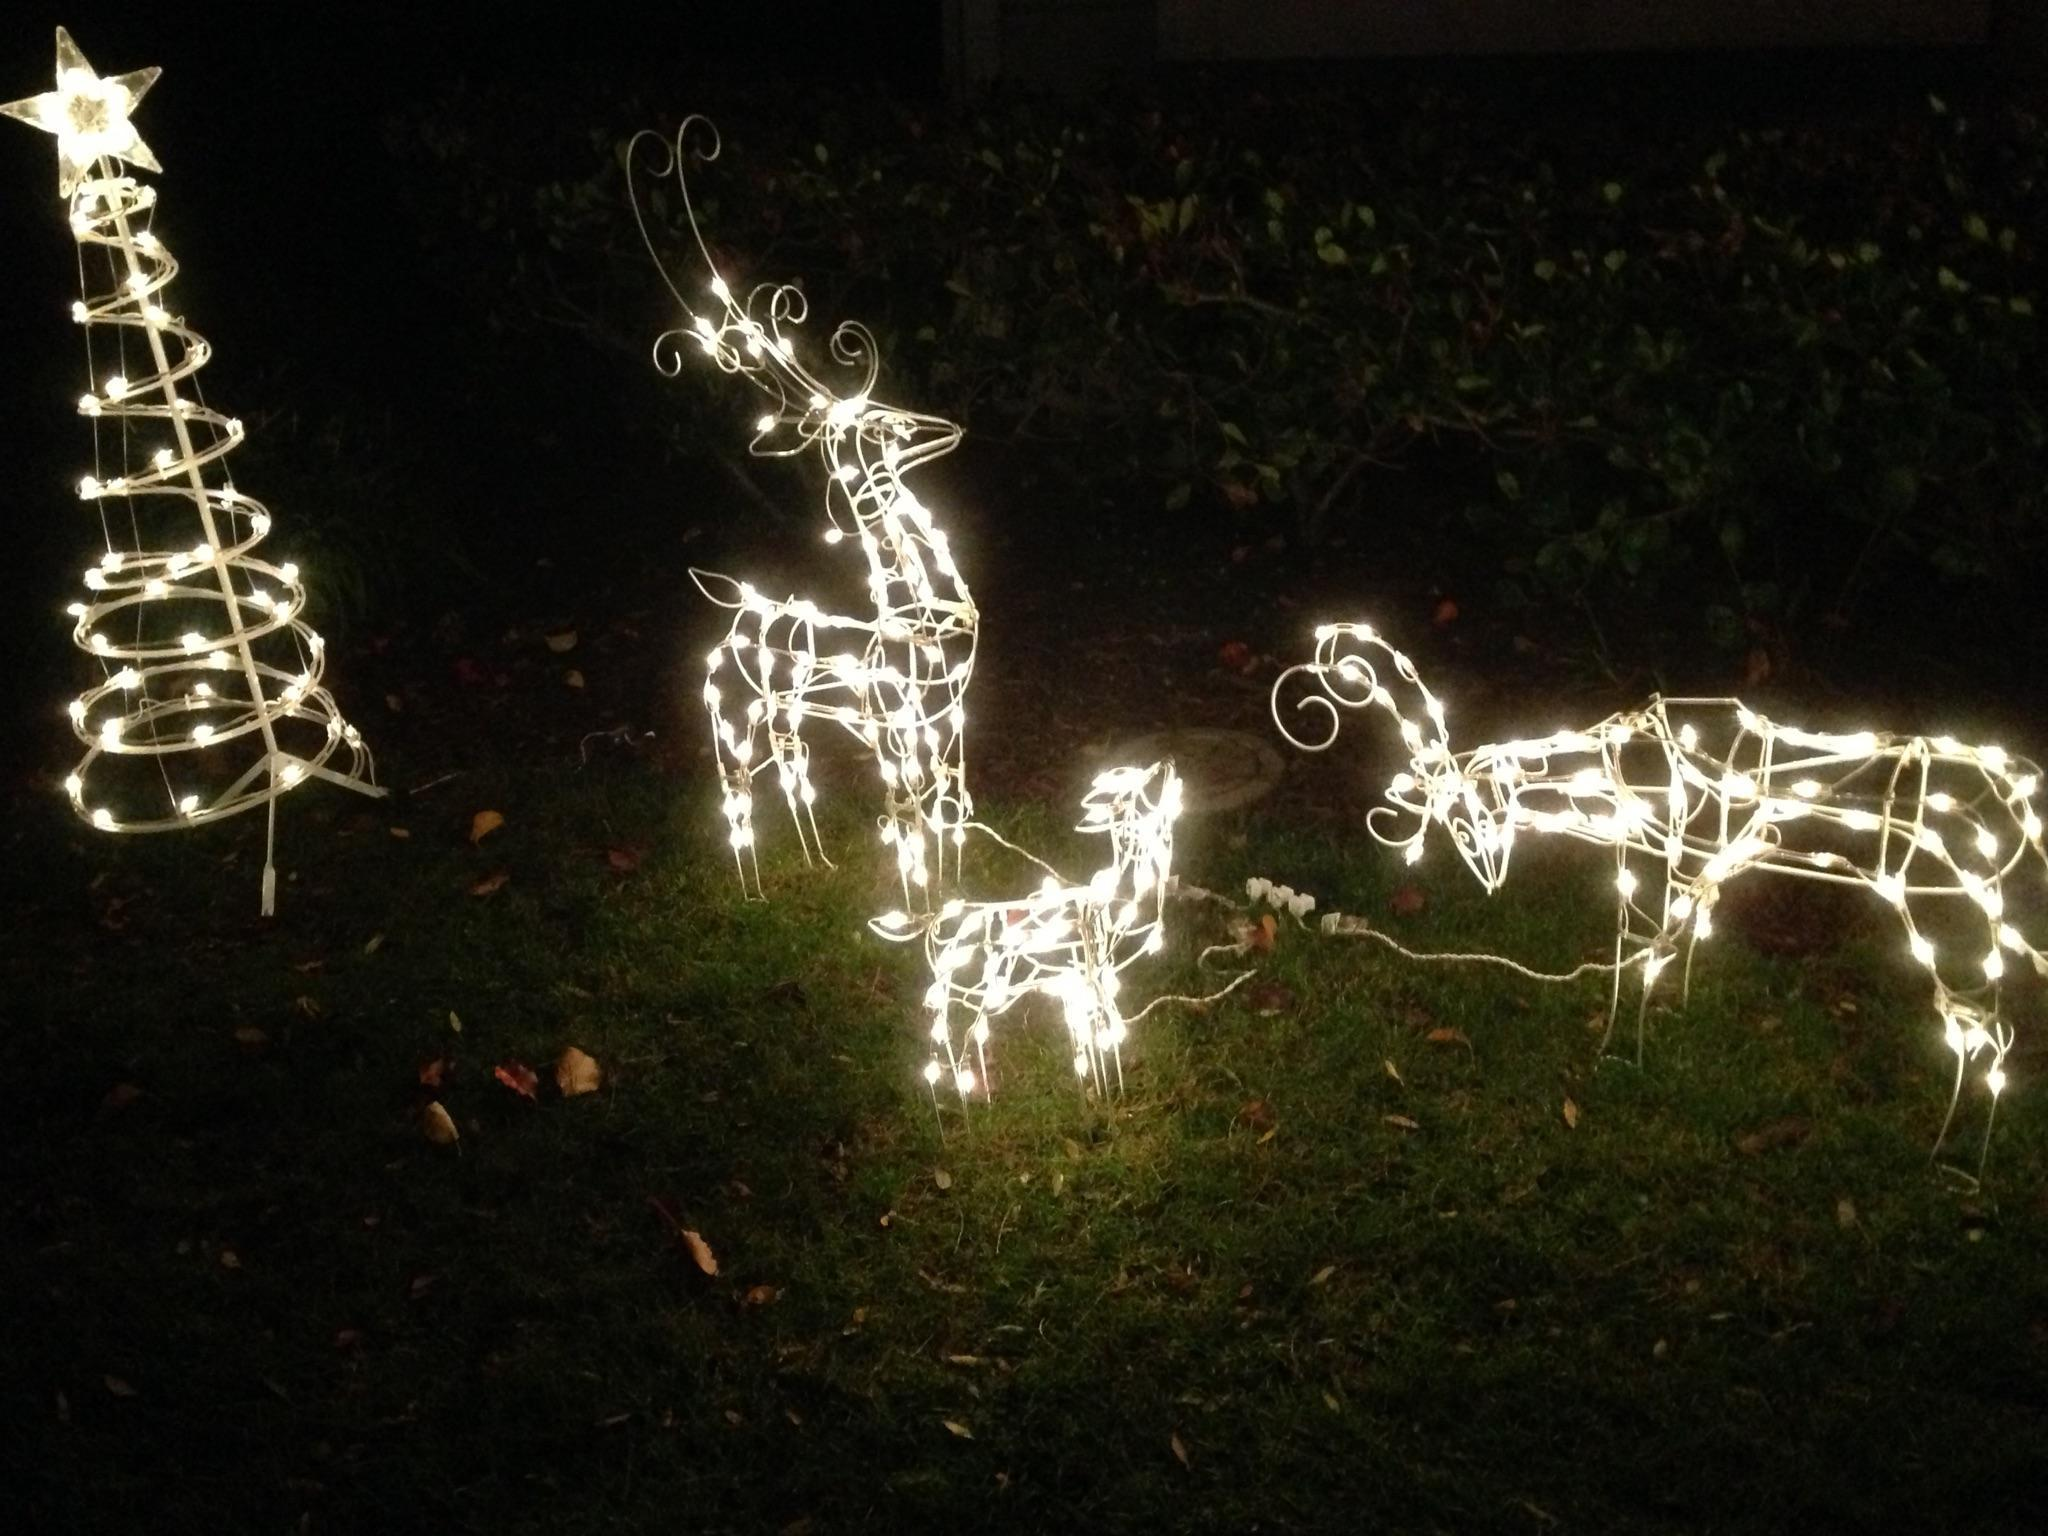 Christmas lawn decorations are a common way to show